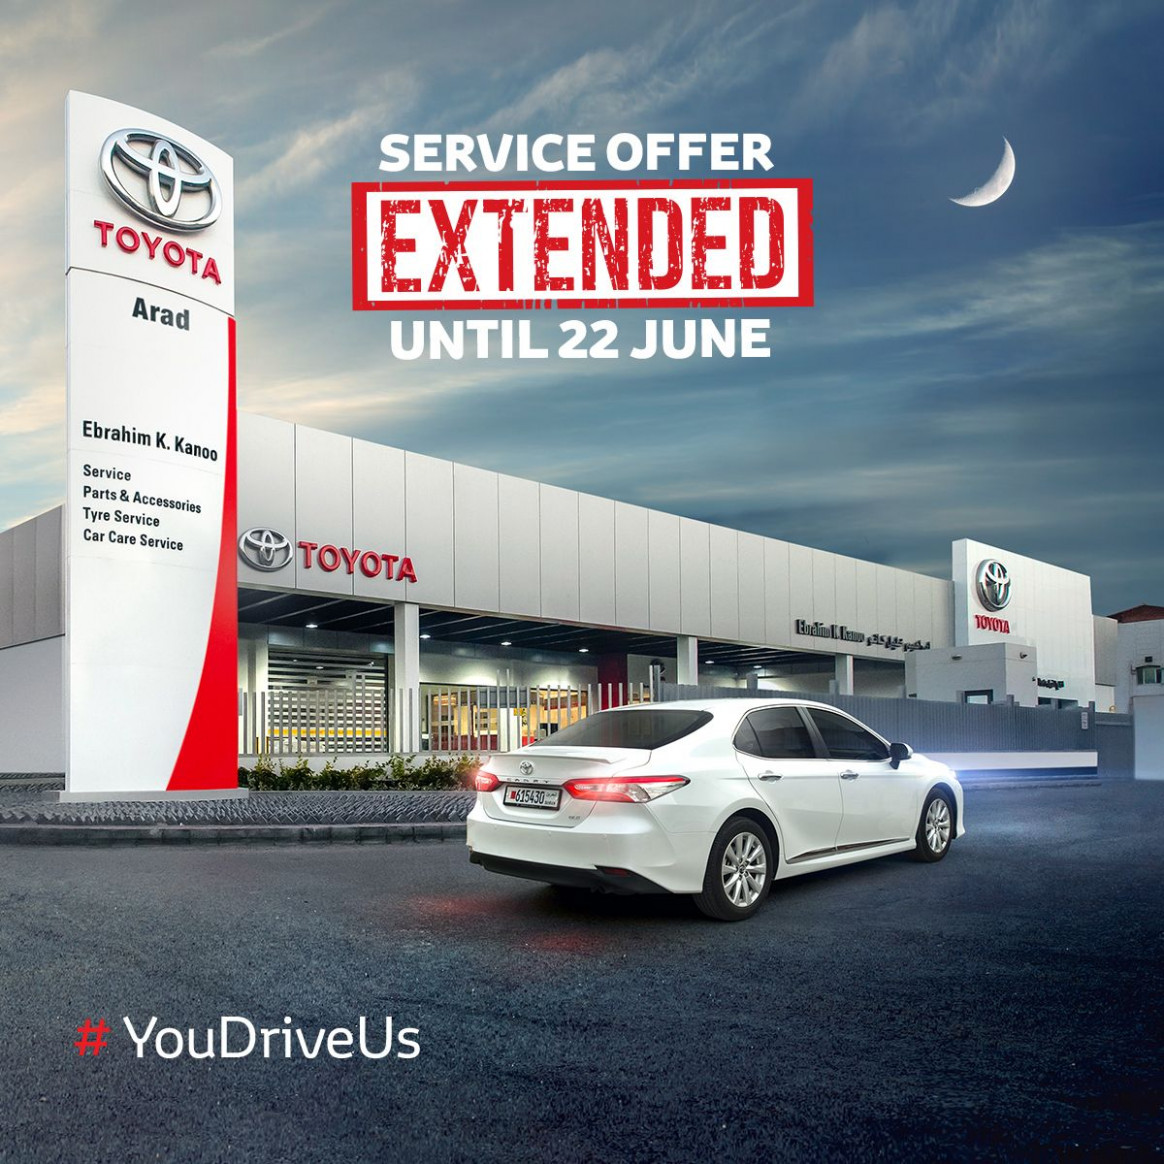 toyota uae ramadan offers 8 Picture 8*8 - toyota uae ..